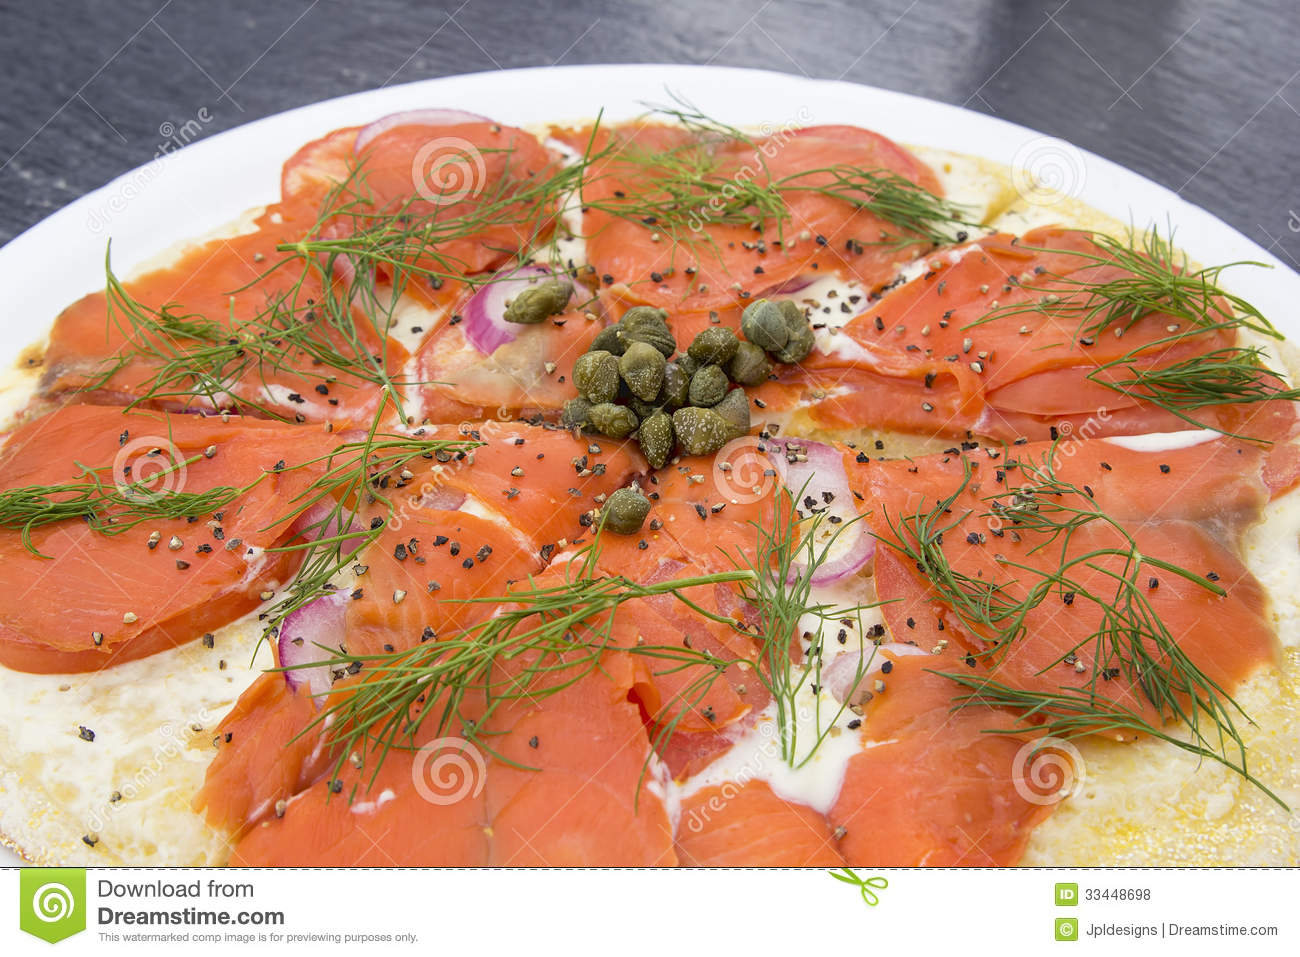 Capers Cheese Closeup Cracked Cream Dill Peppers Pizza Salmon